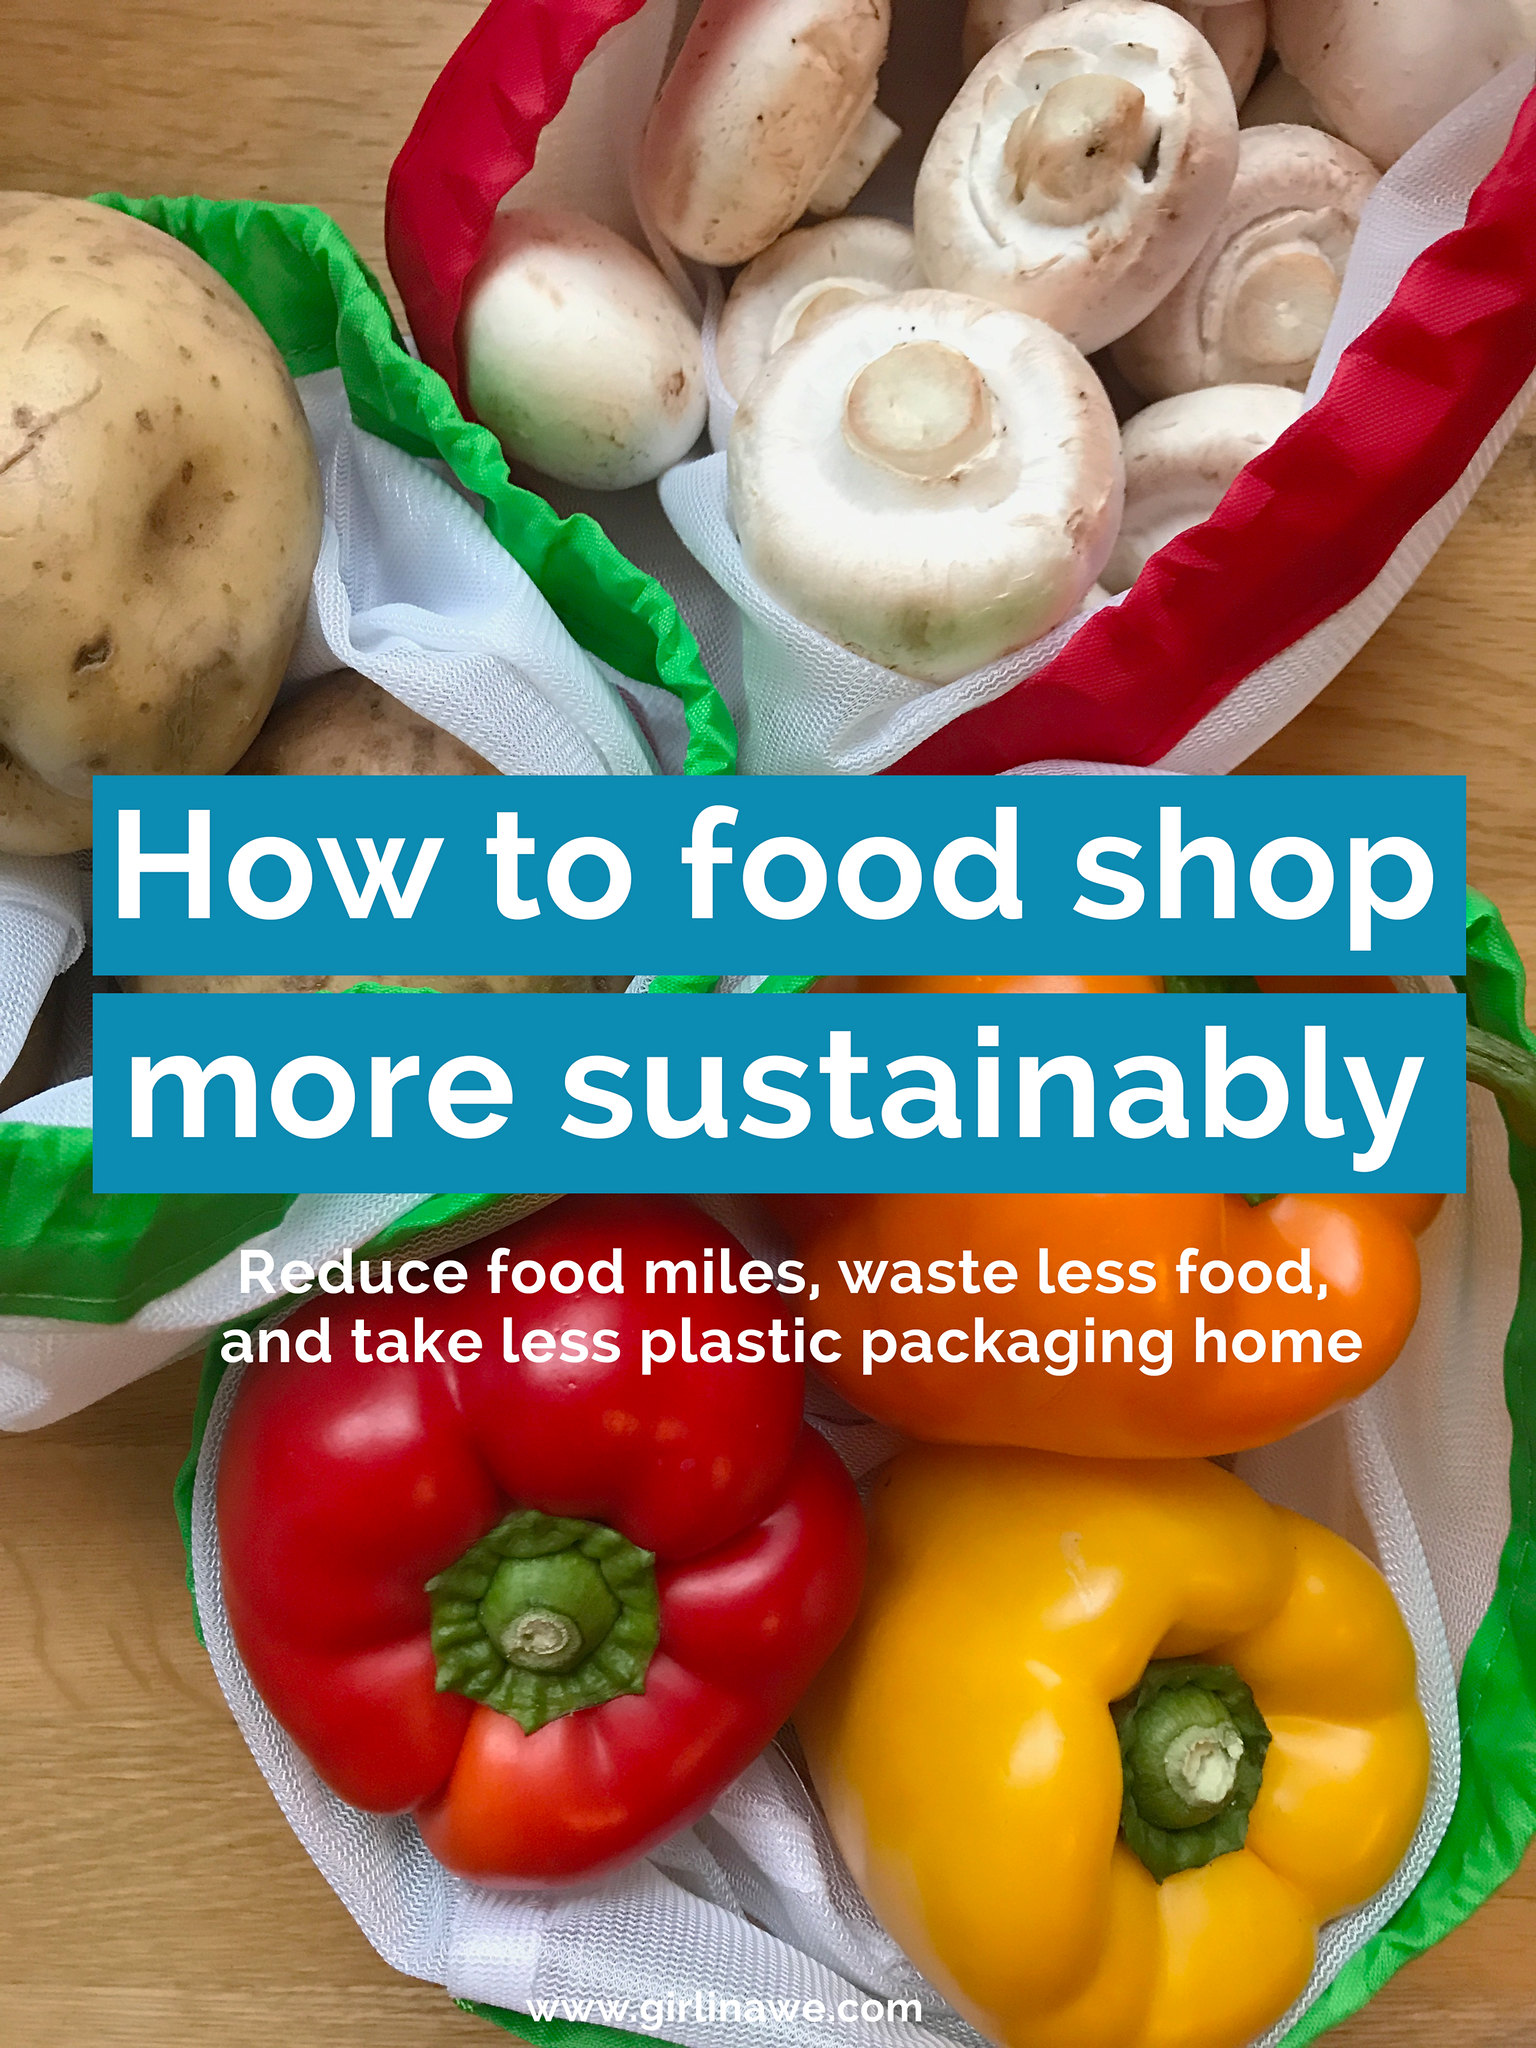 Sustainable food shopping; how to reduce your food miles, waste less food, and take less plastic packaging home